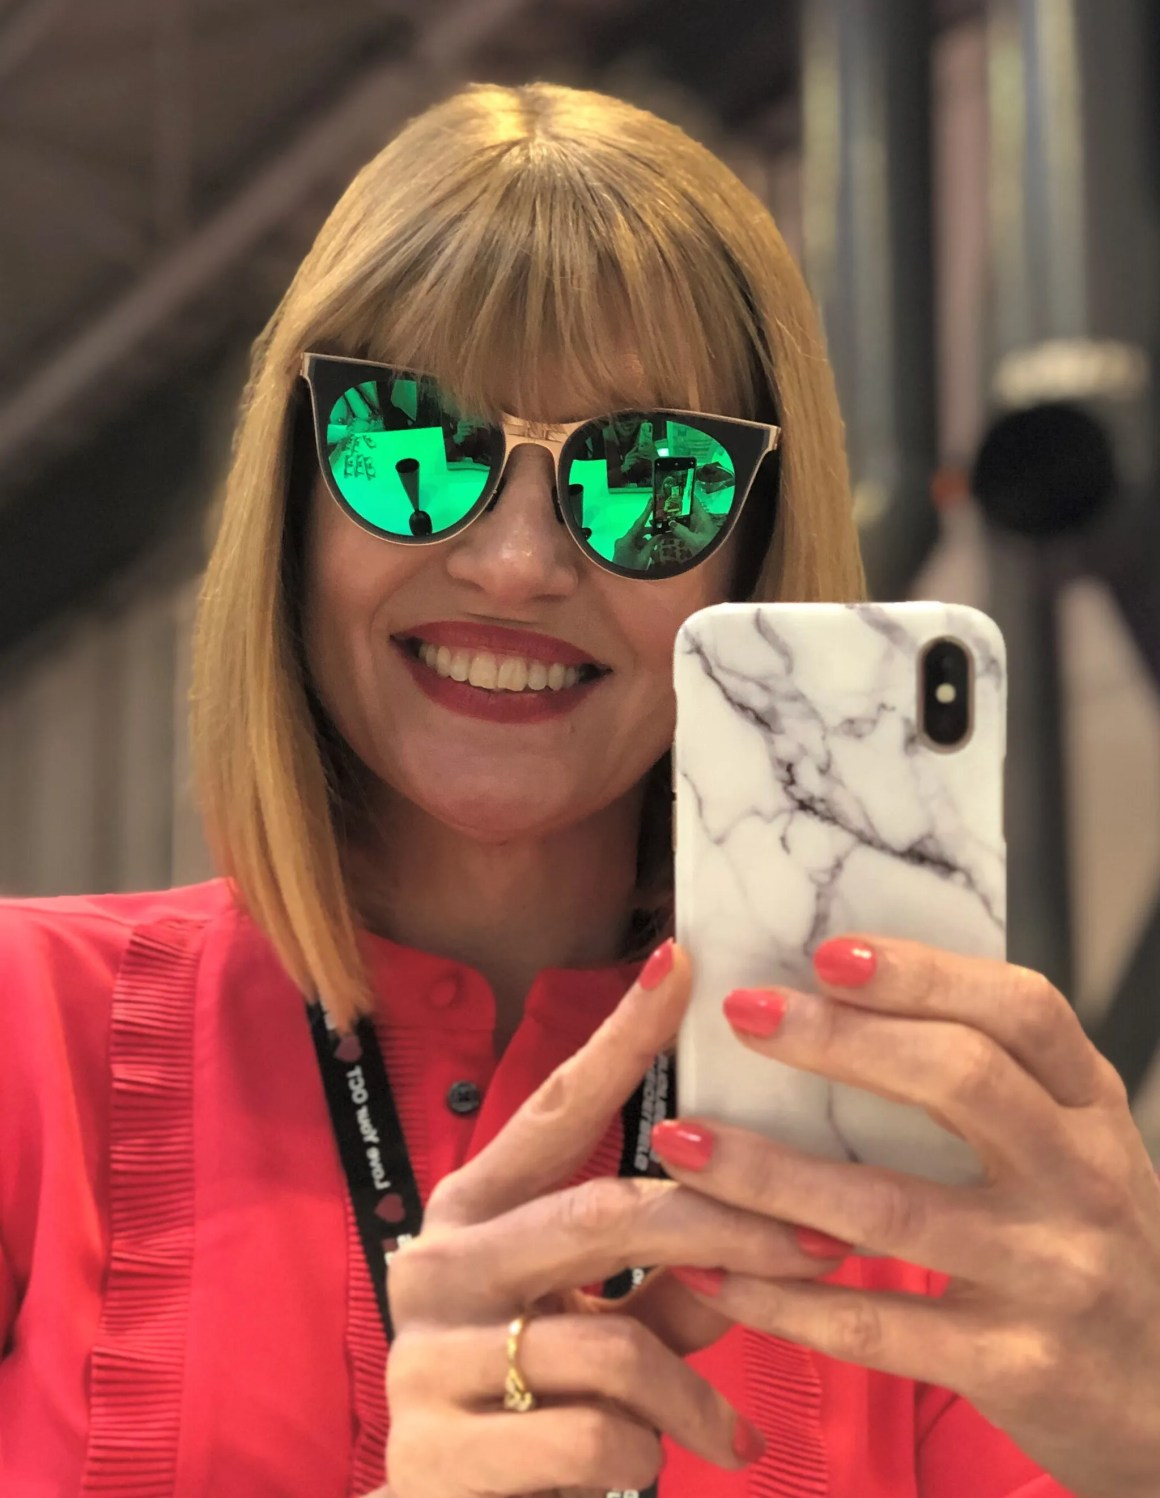 Optrafair 2019 Bondeye Optical ROAV sunglasses